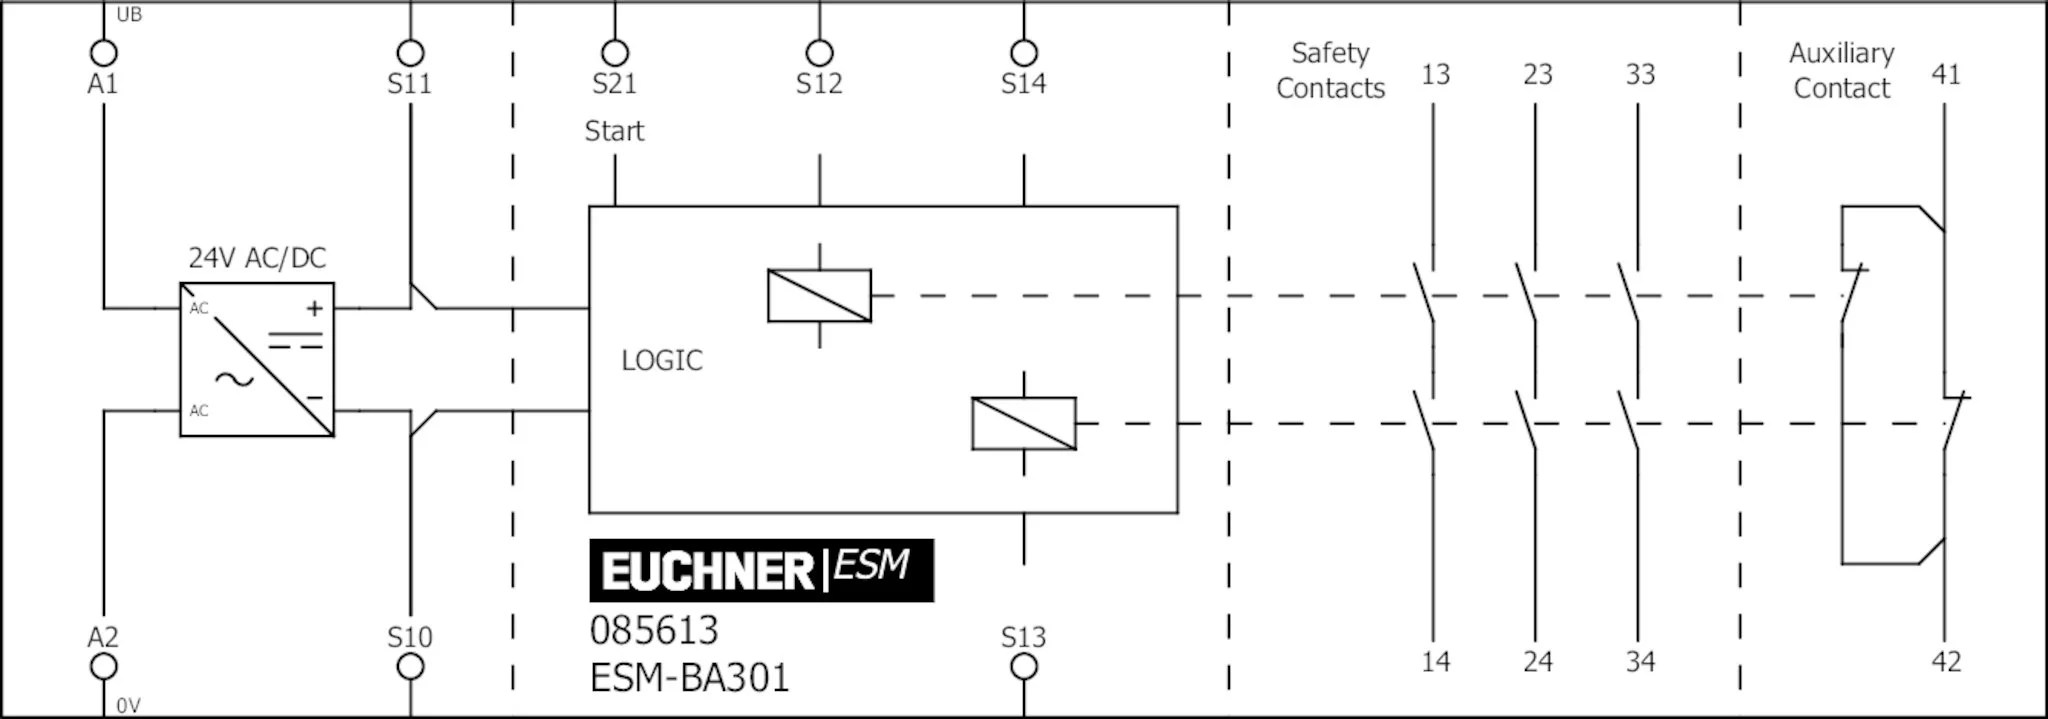 ESM-BA301 Basic device ESM-BA3.., 3 safety contacts, 1